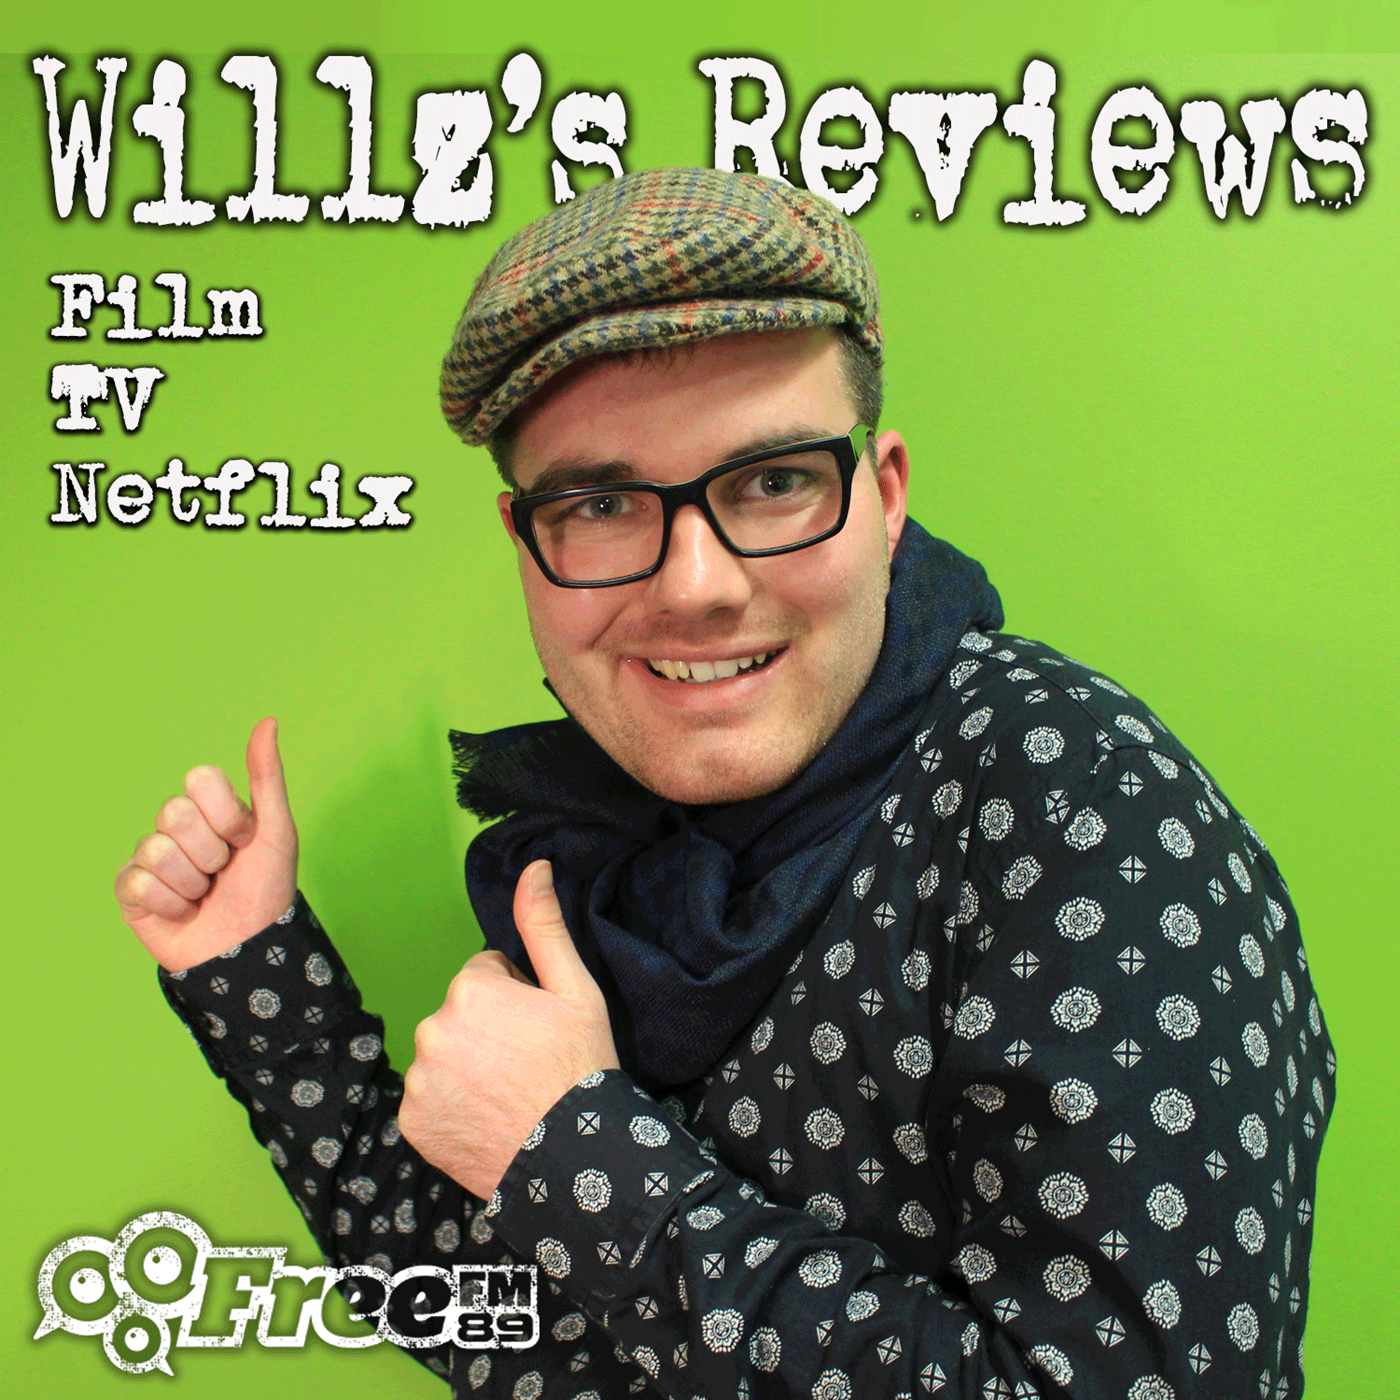 Willz's Reviews